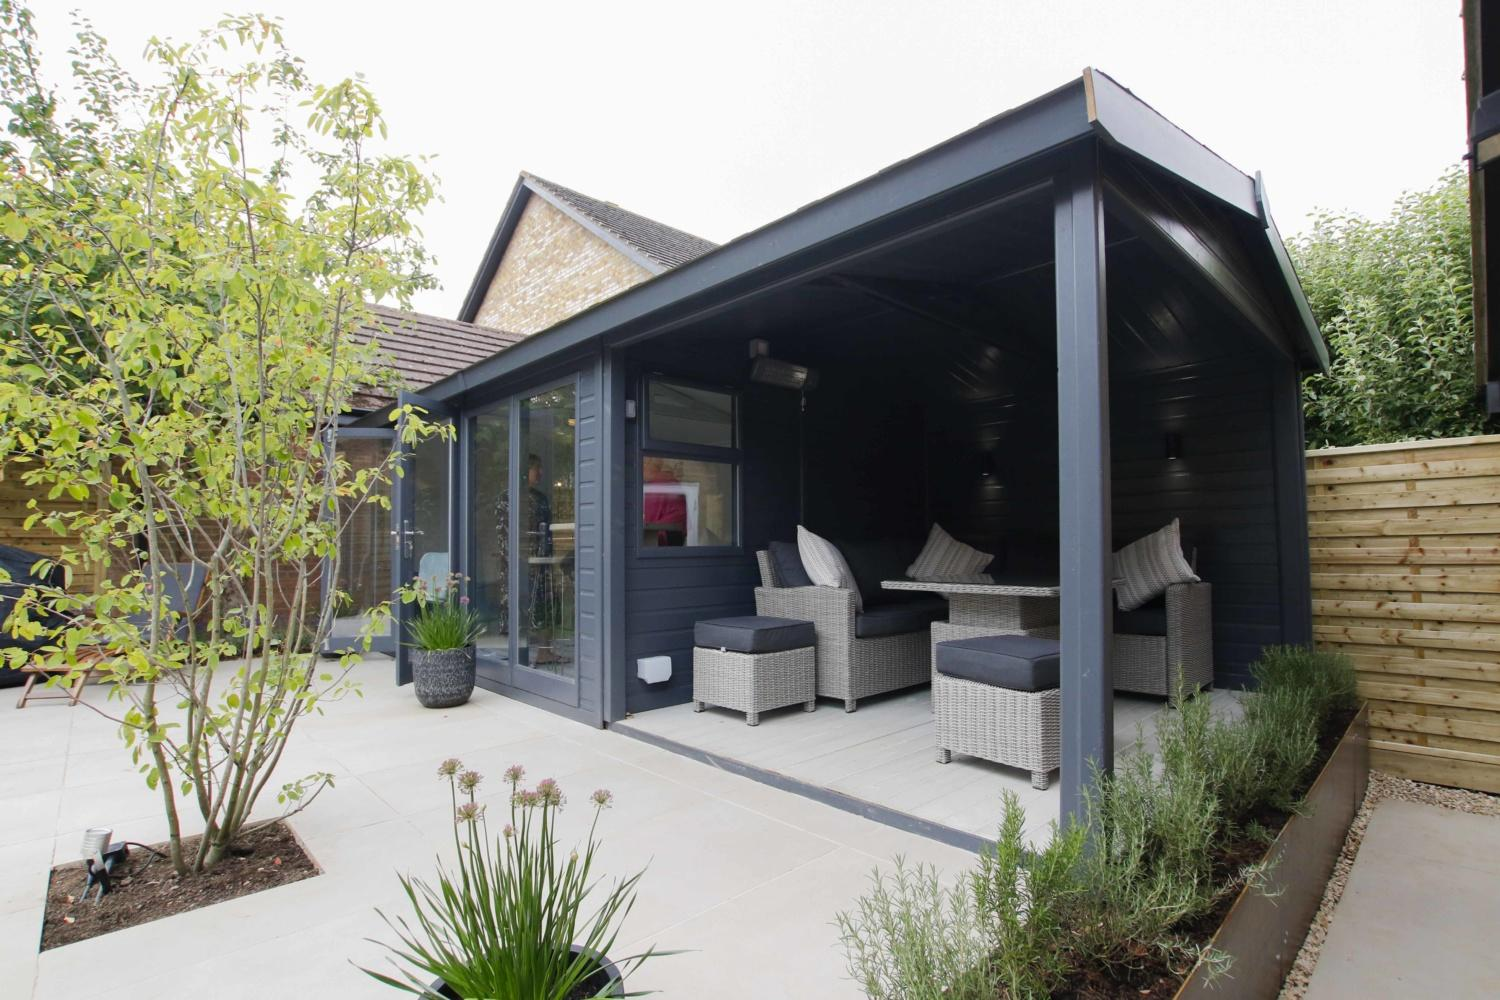 A garden building with an open sided area with comfortable lounge seating, surrounded by tidy planting